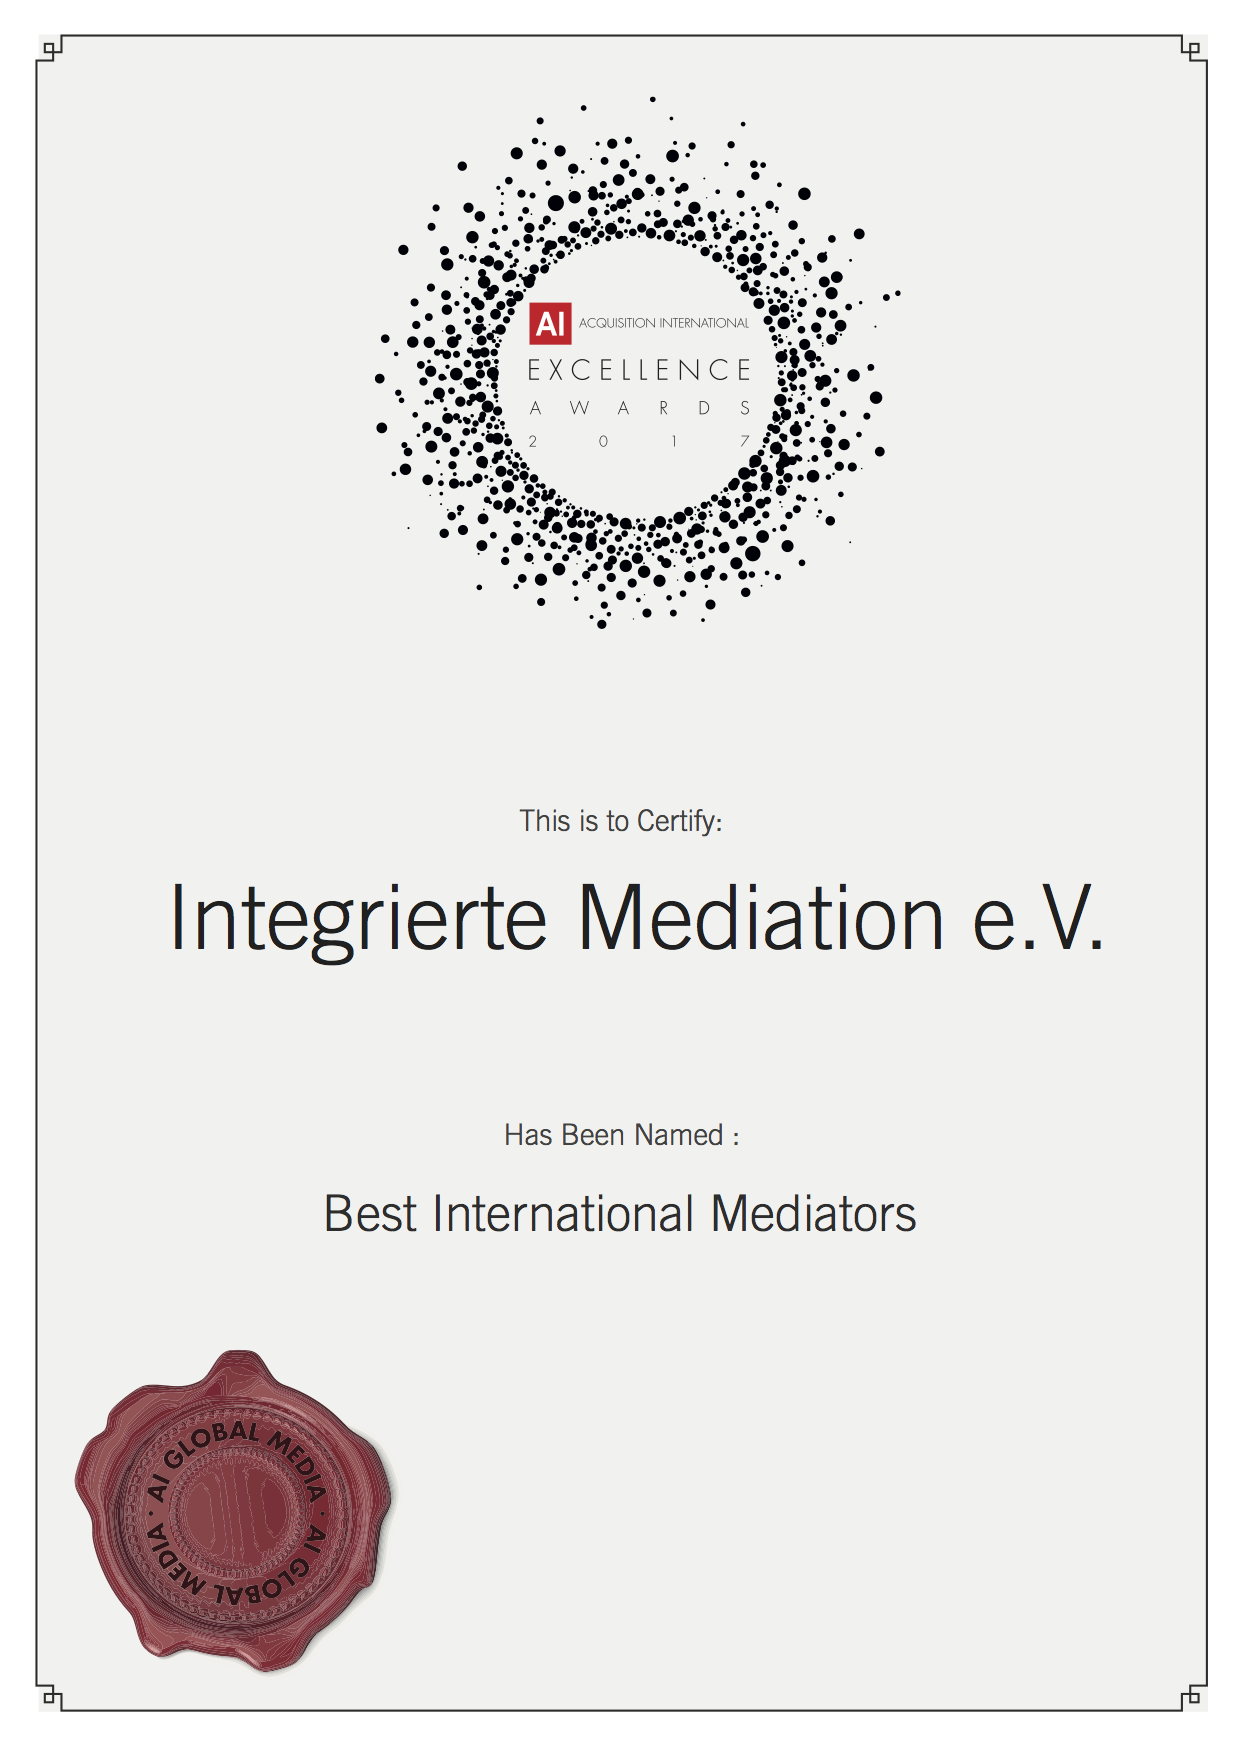 Best International Mediators